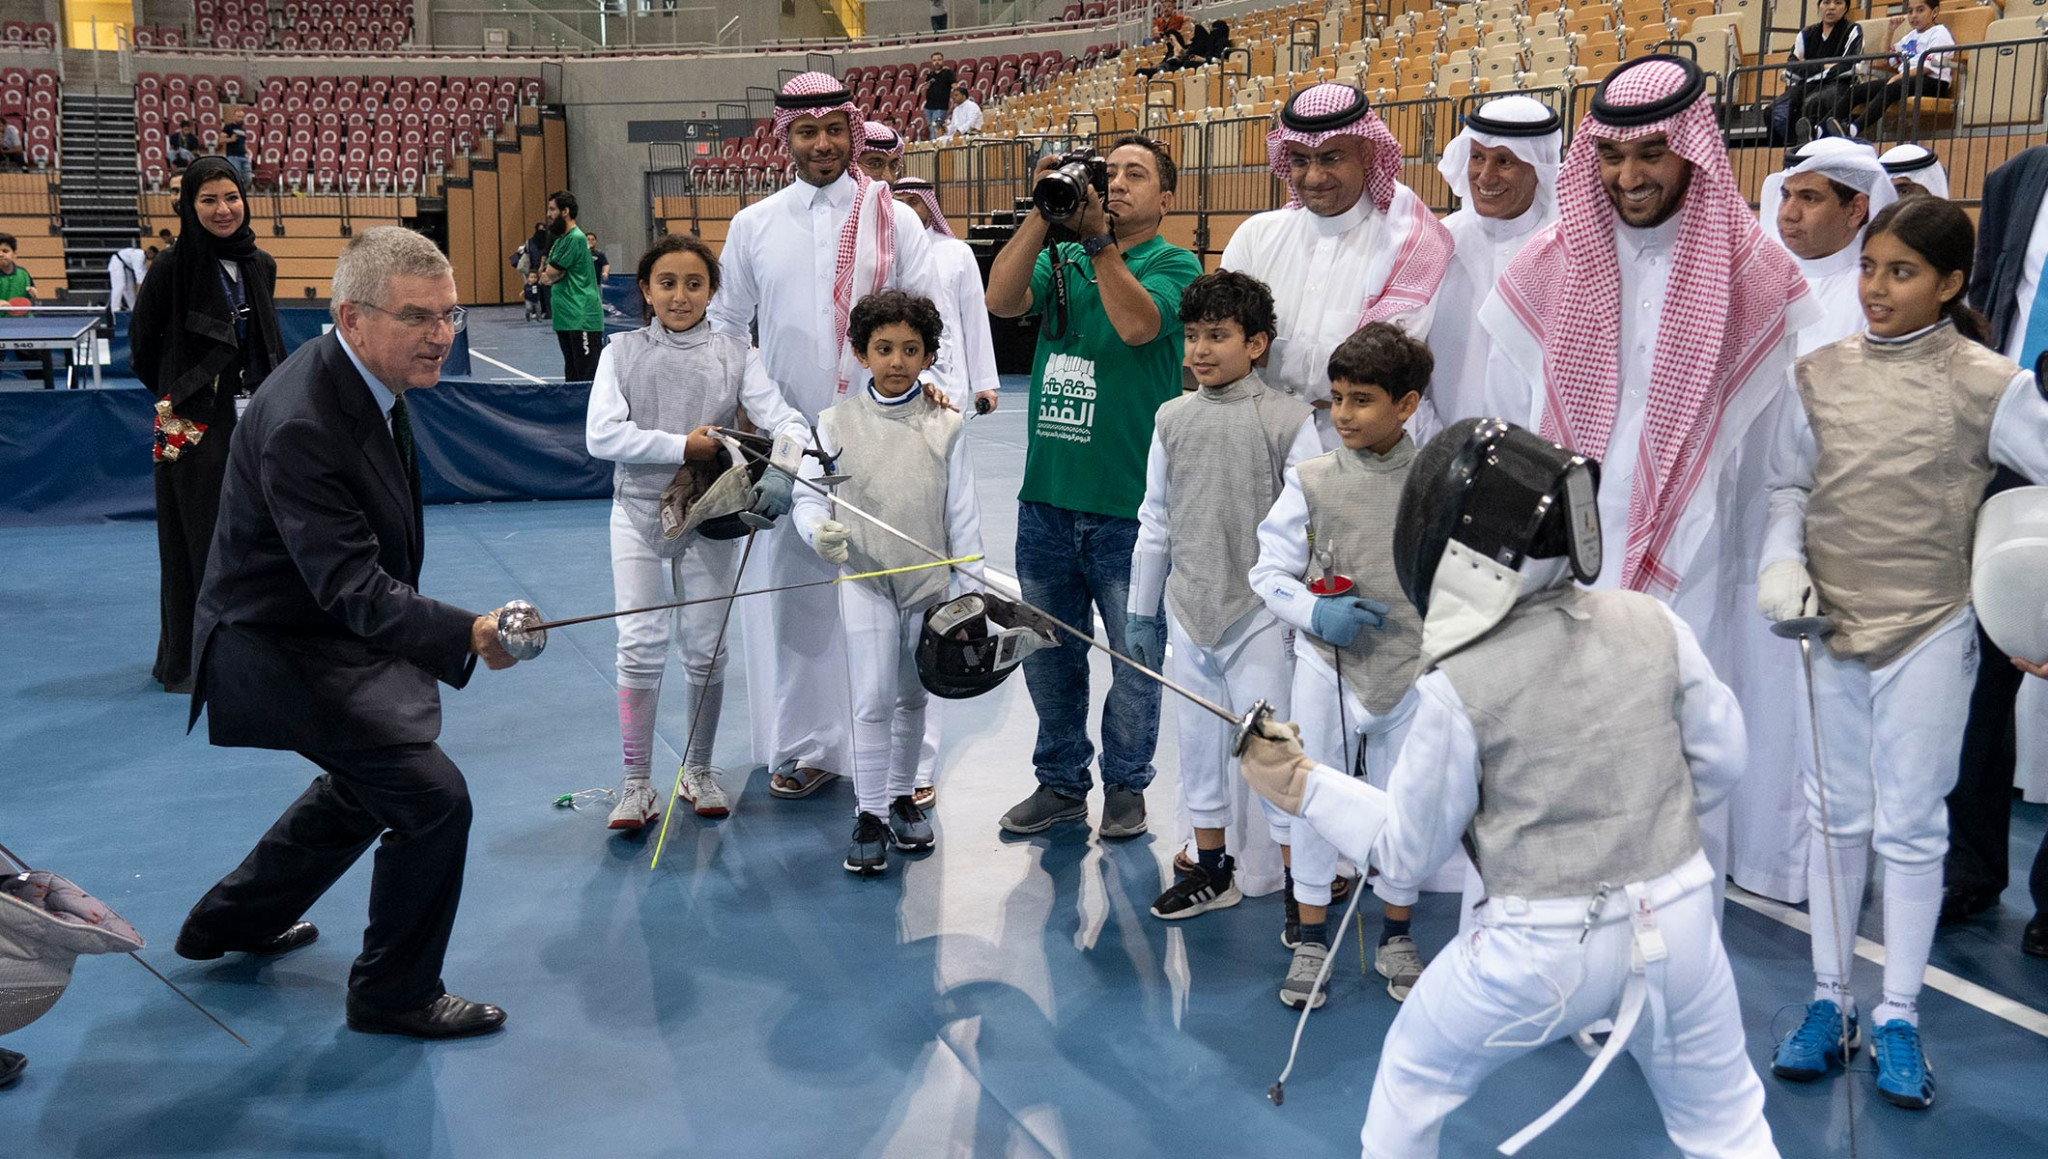 Saudi Arabia promise Bach more opportunities for female athletes